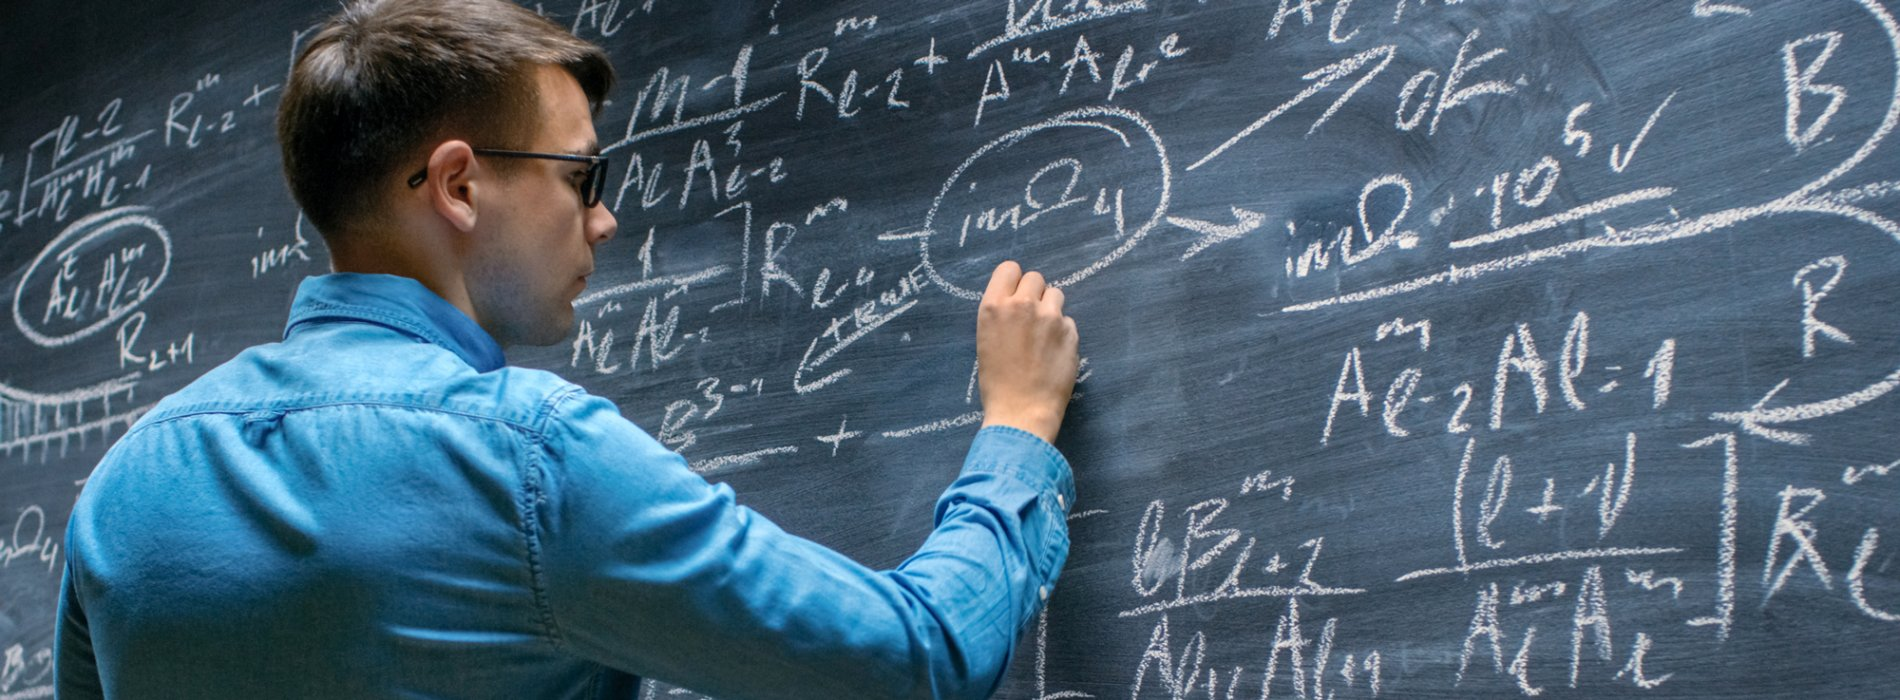 Student working on a mathematics formula at a chalkboard